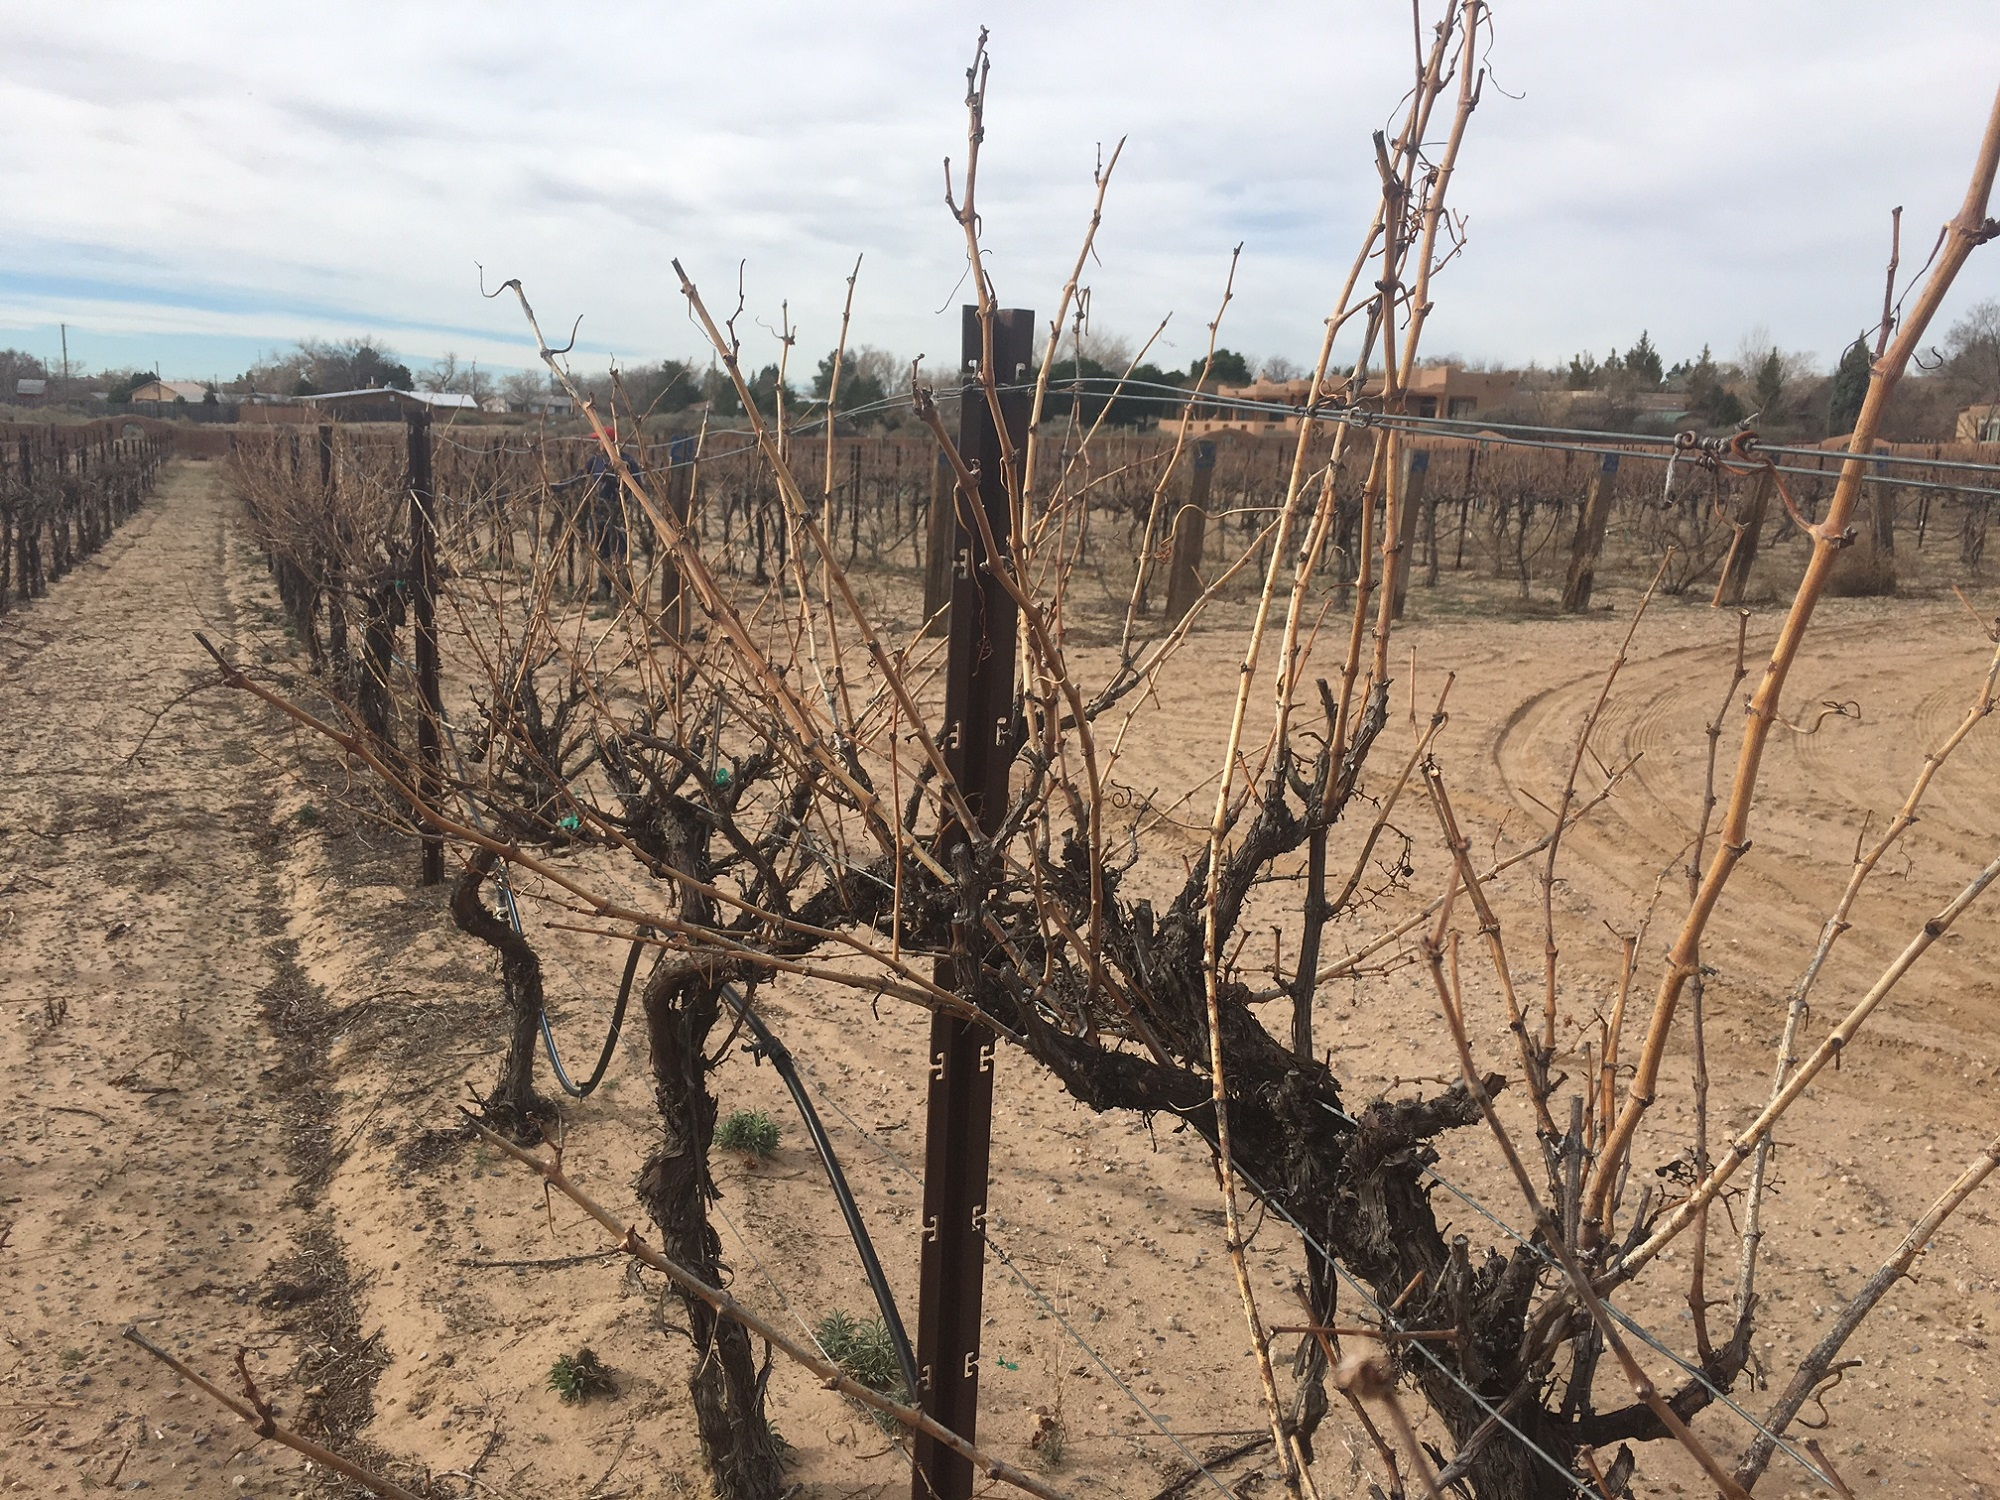 The vines are wild and have long unruly canes. The canes need to be pruned to control the growth for next springl